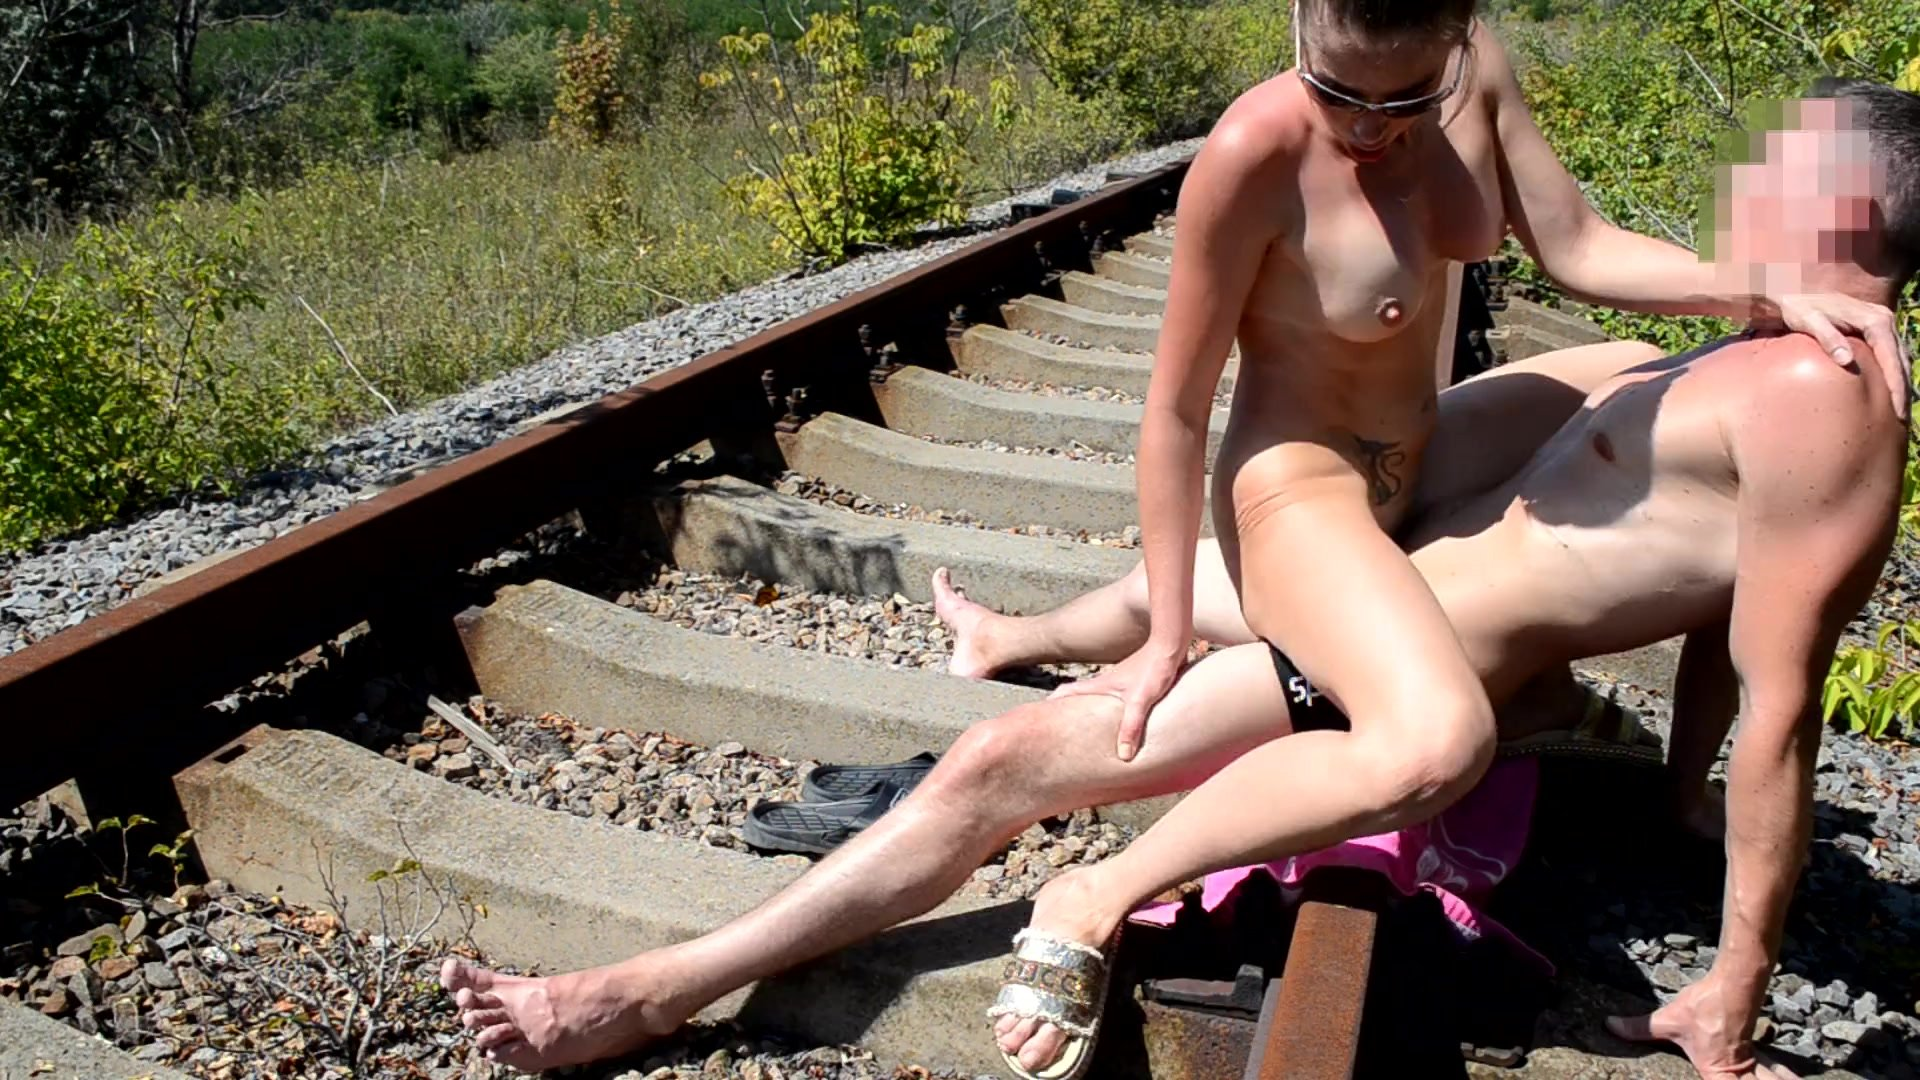 Fit girl gets cum on her face on the railroad track, amateur sex